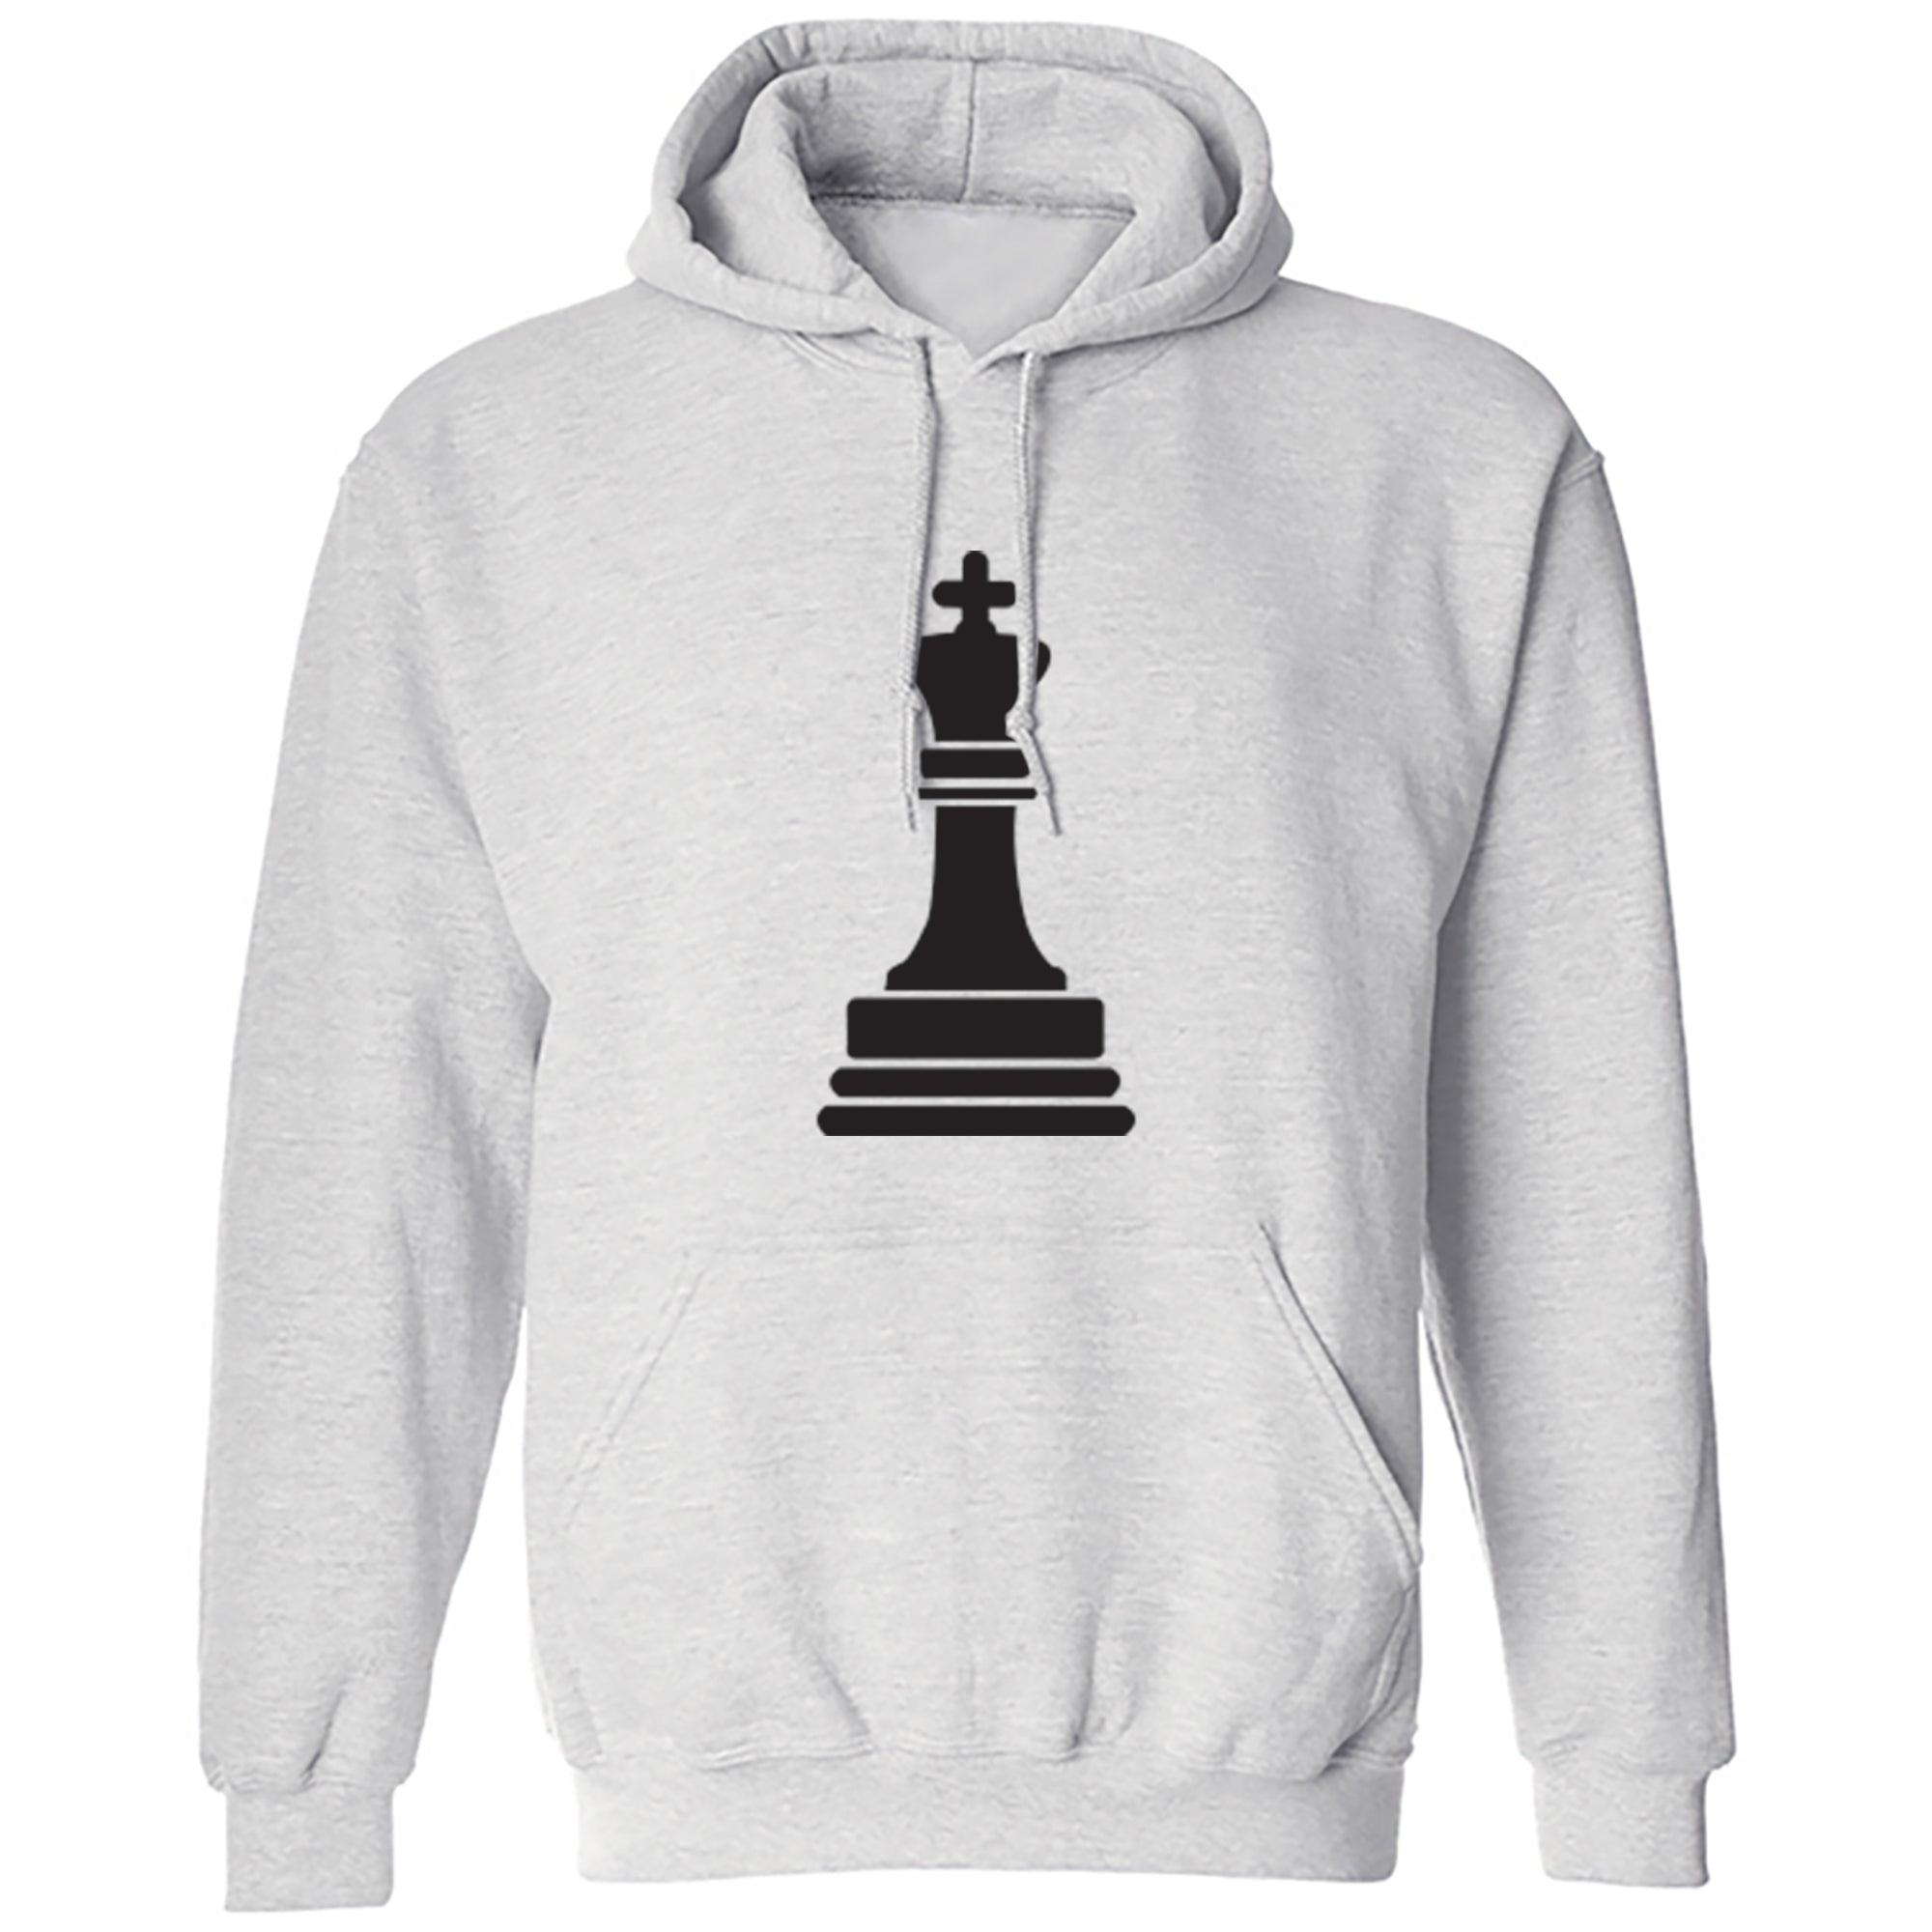 King Unisex Hoodie S0344 - Illustrated Identity Ltd.